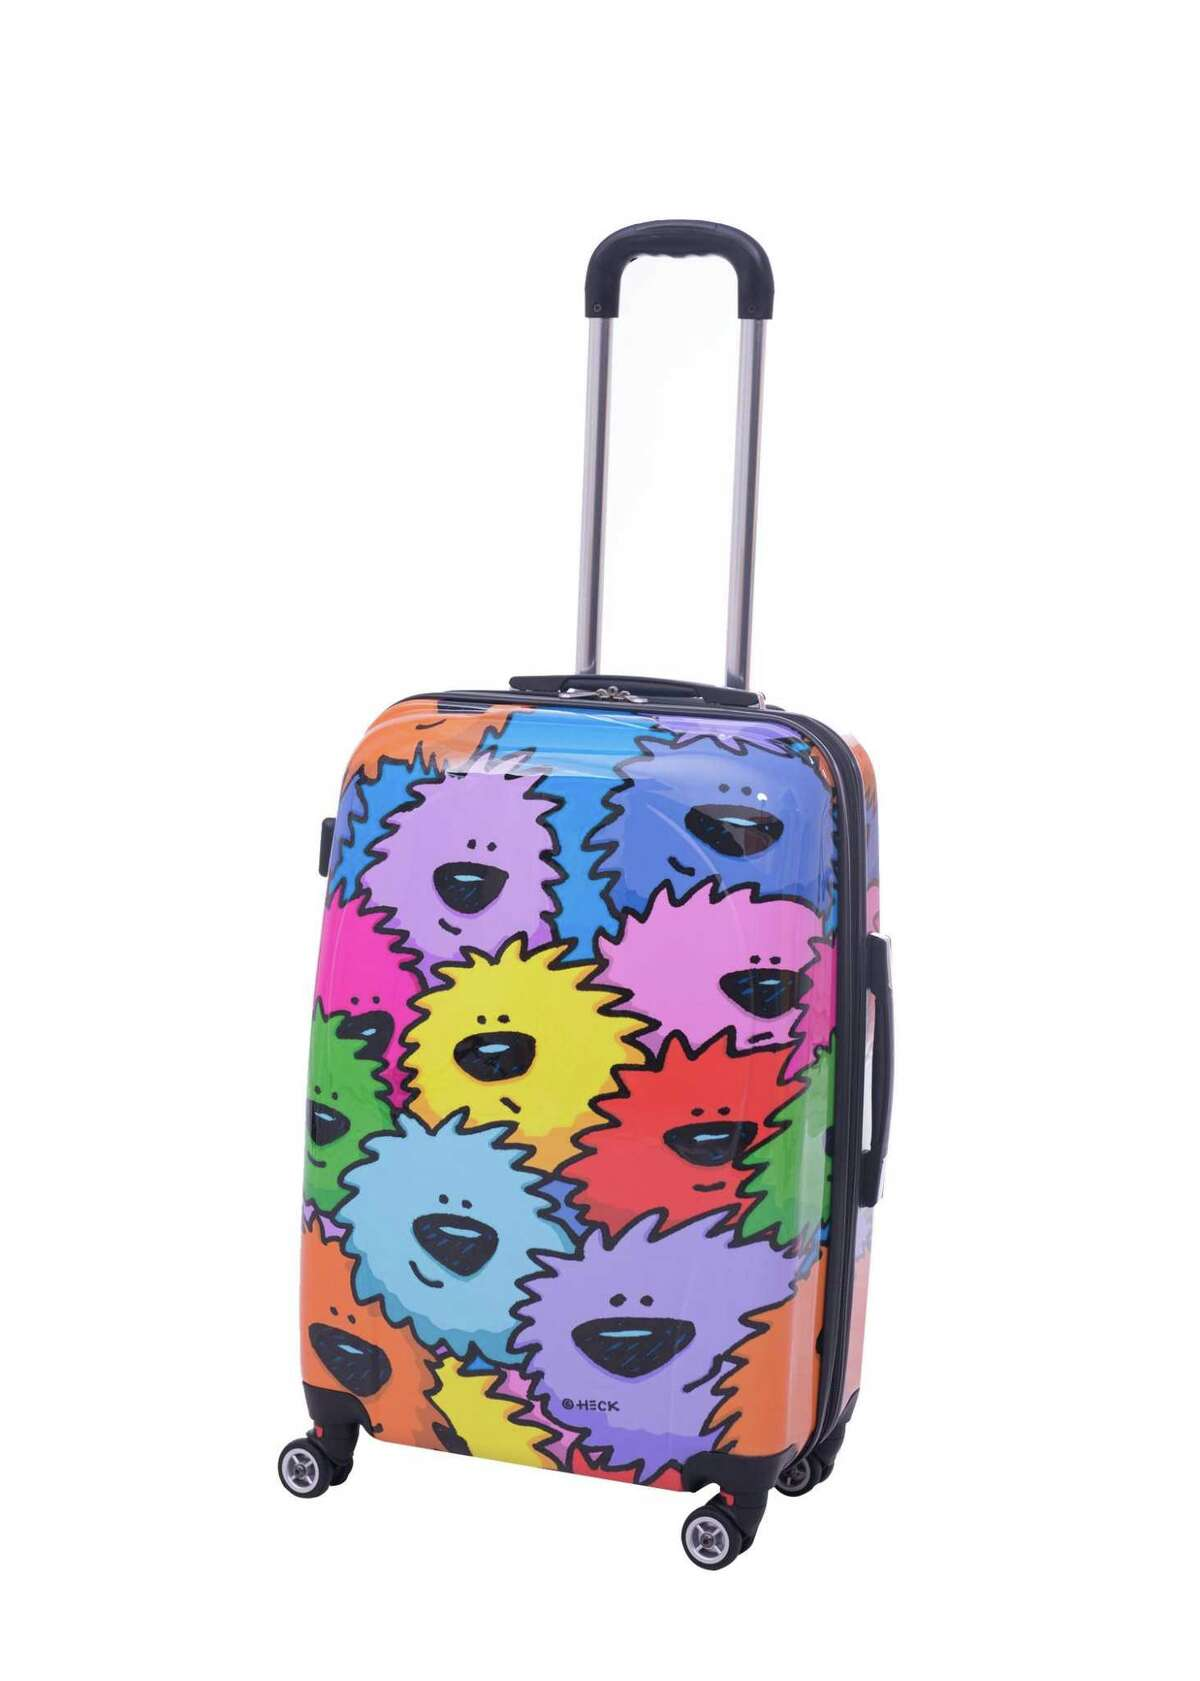 """Ed Heck Sebastian 8-Wheeled Hardside Spinner Luggage: Your teenager will go """"gaga"""" over this ultra cool suitcase designed by Celebrity Pop Artist Ed Heck. They'll surely stand out in a crowd and the hard-sided colorful bag is easy to spot on the baggage carousel. The durable Sebastian Collection absorbs impacts and features 360º multi-directional spinner wheels that will glide easily on all surfaces. Self-repairing nylon zippers plus expandability to accommodate those last minute packing items. Around $100. LongLat available in 21""""/25""""/29"""" At longlatinc.com."""